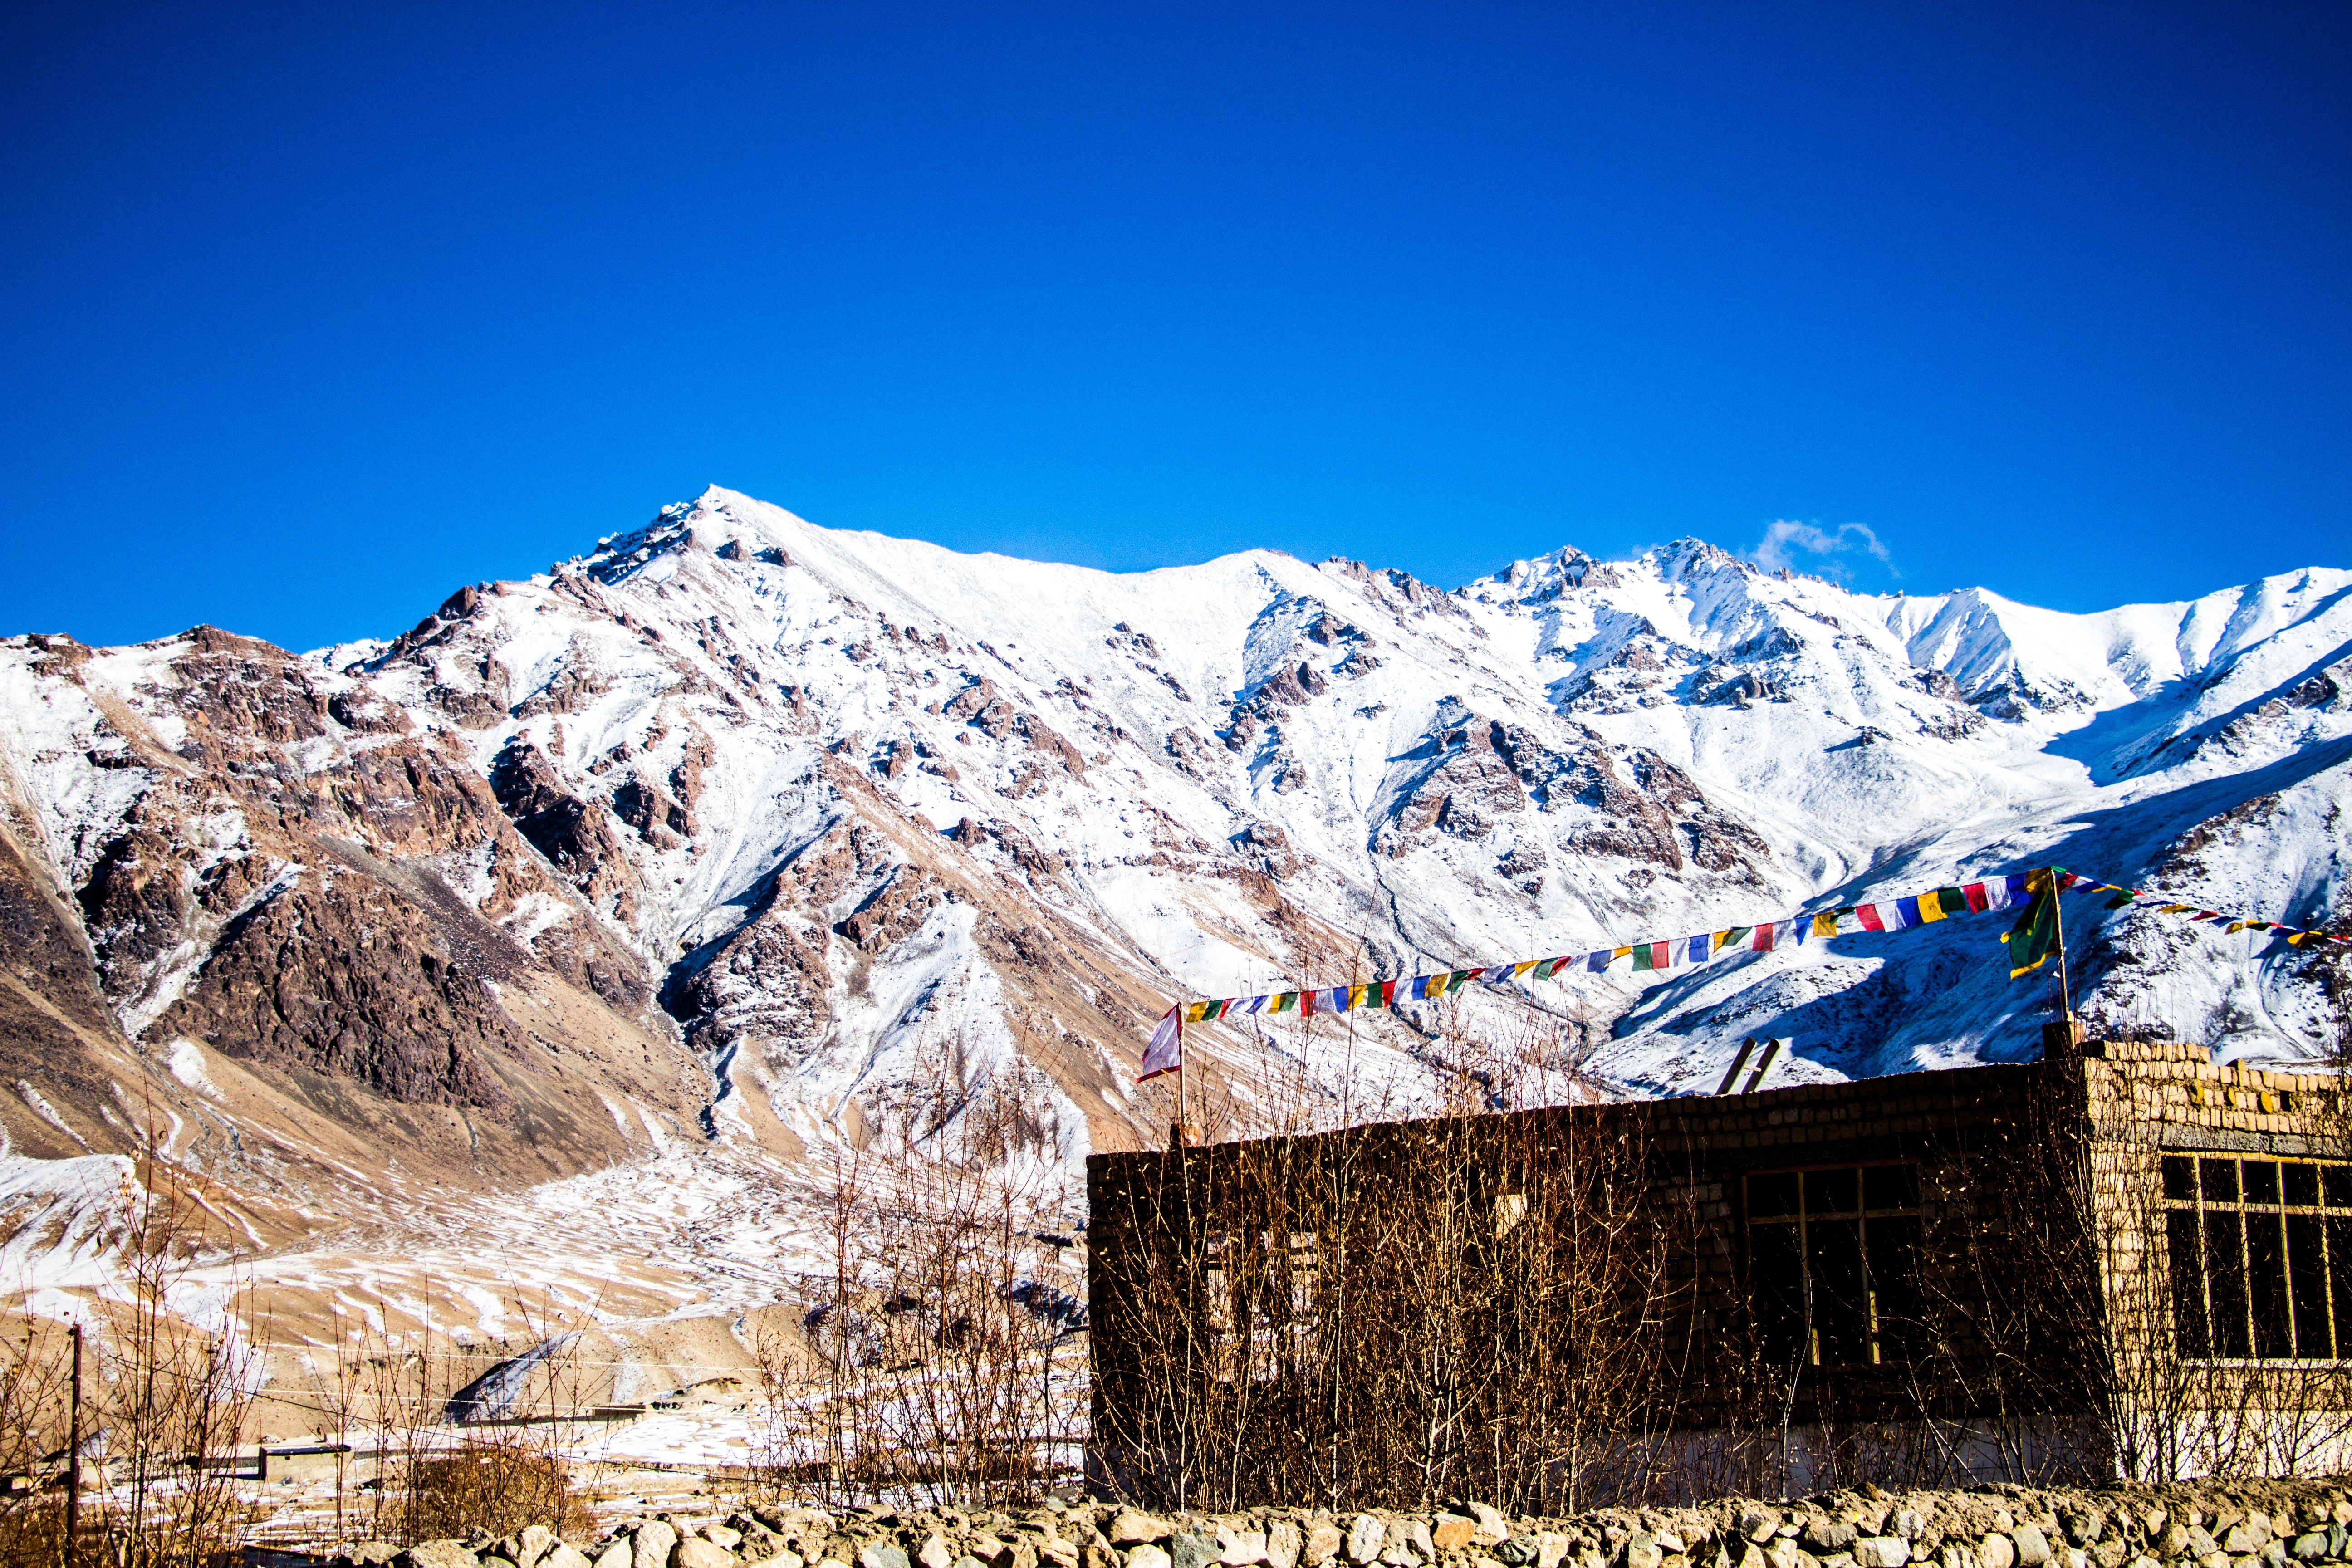 Stone building at the base of snow-covered mountain range under clear bright blue sky photo